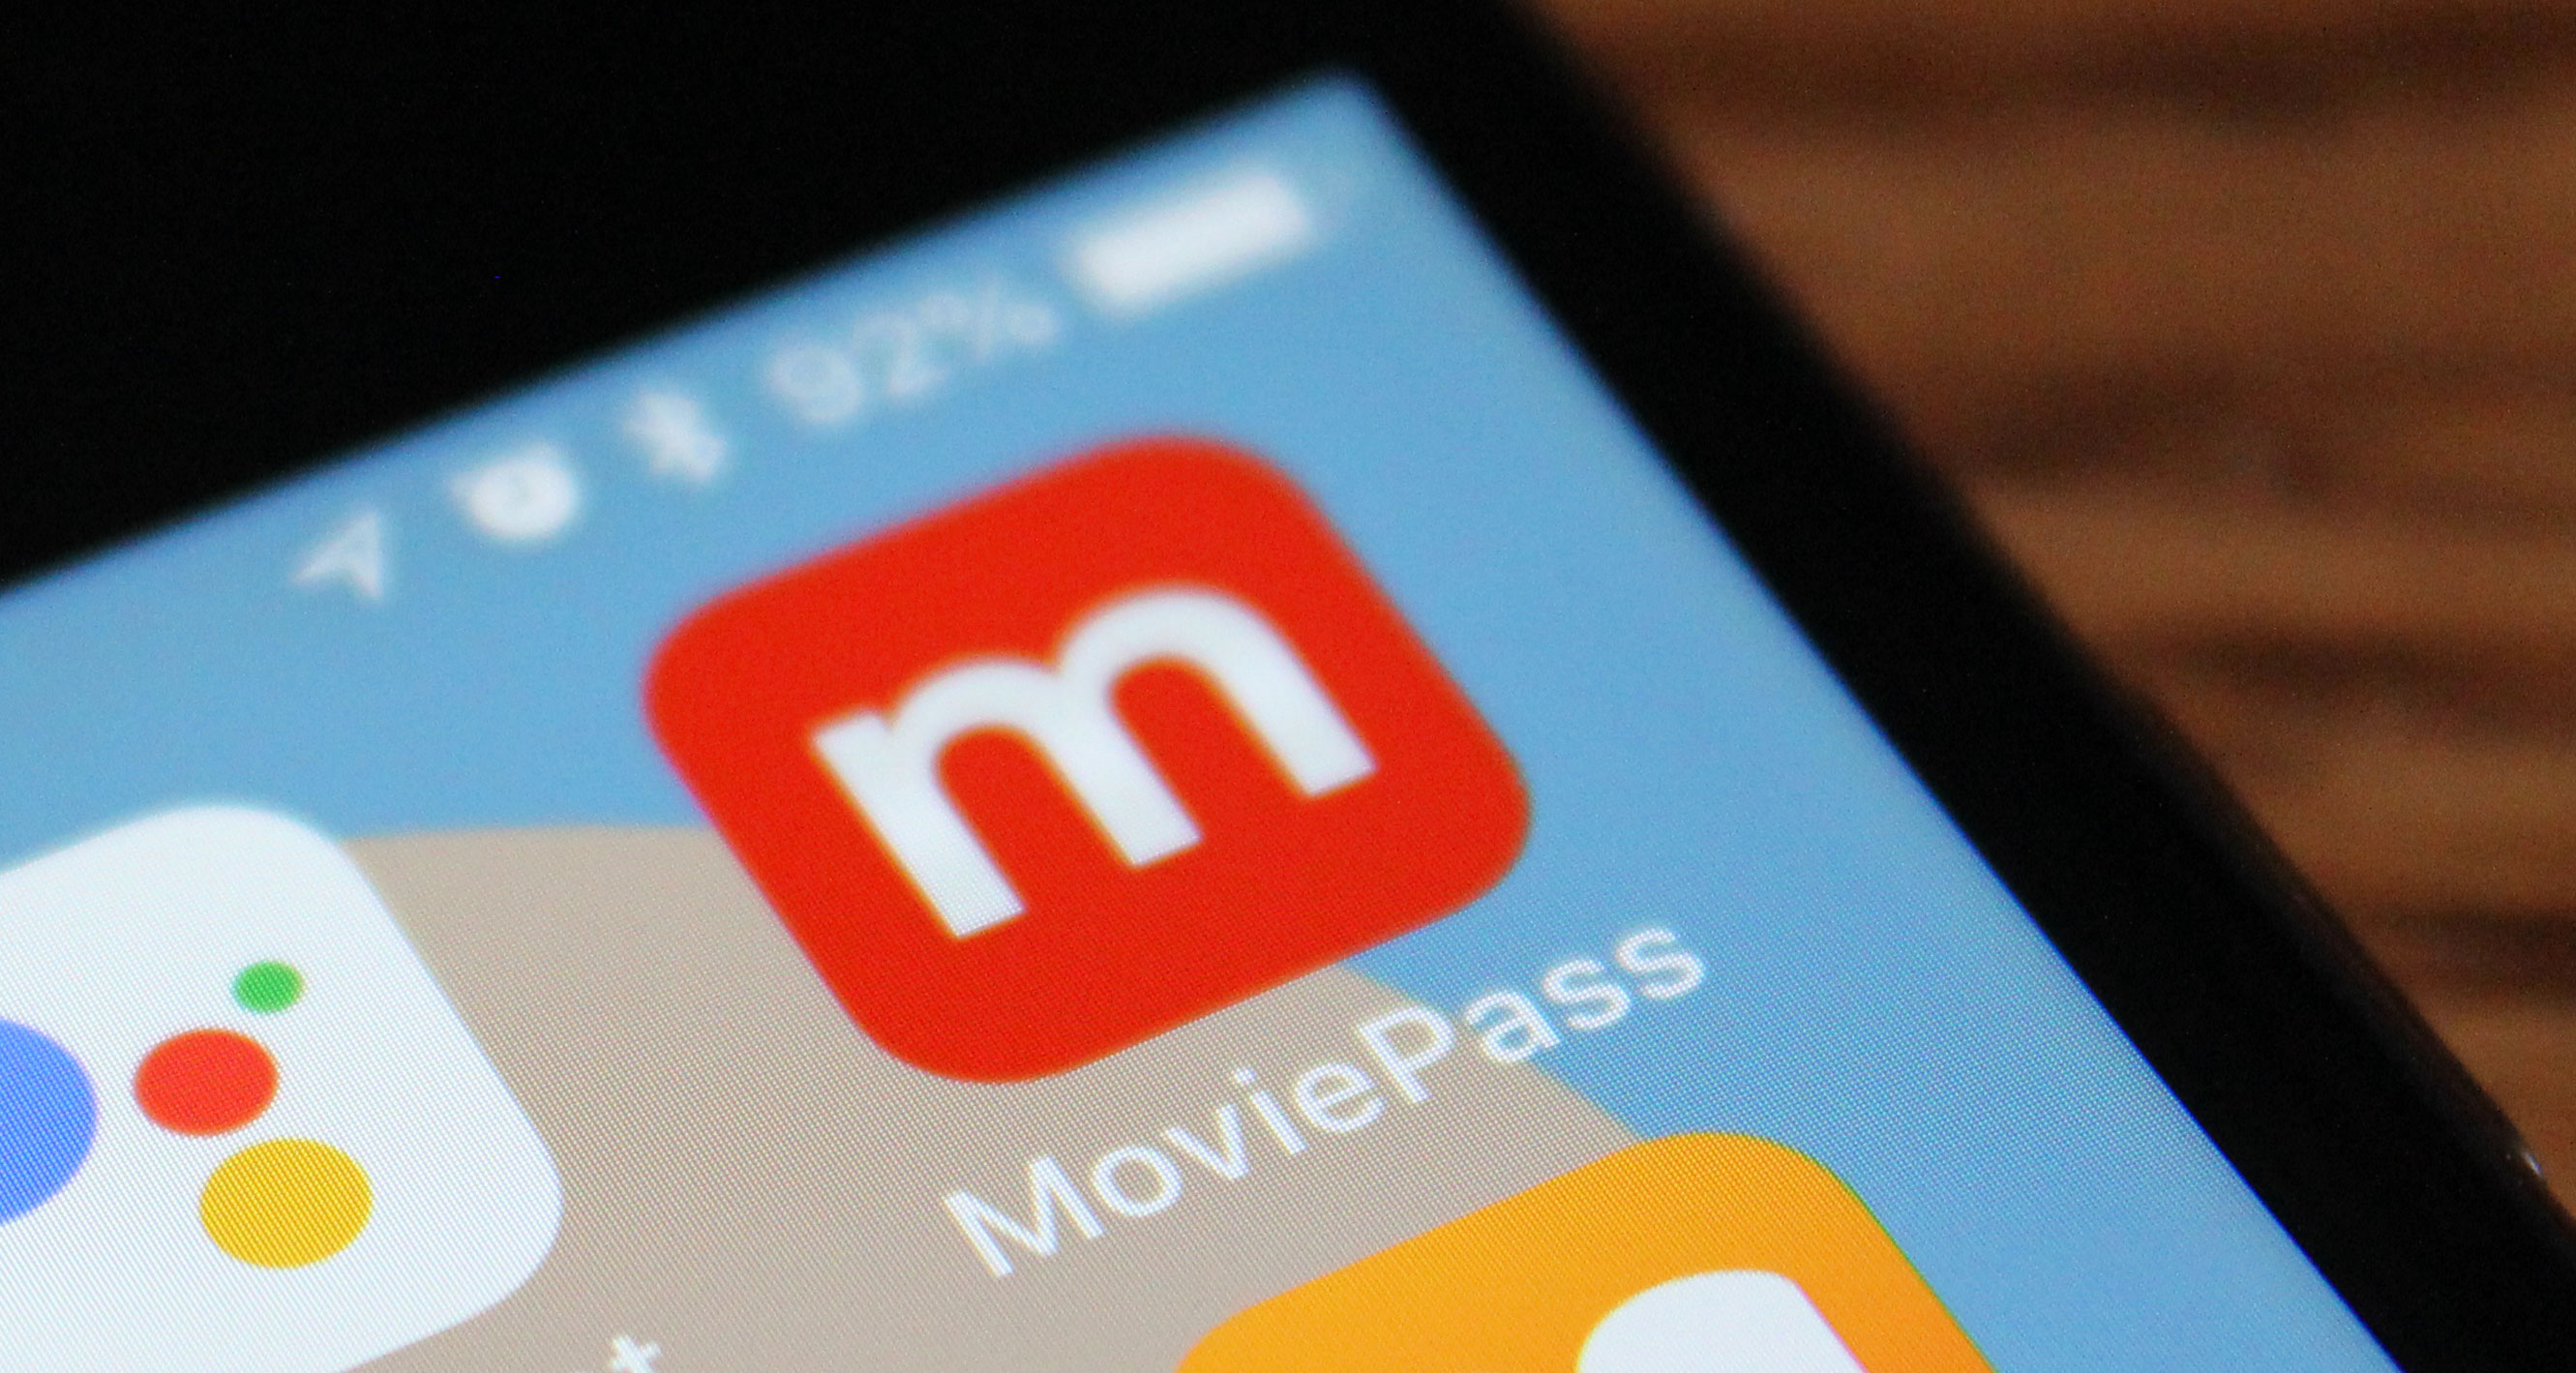 MoviePass begins surge pricing for popular films